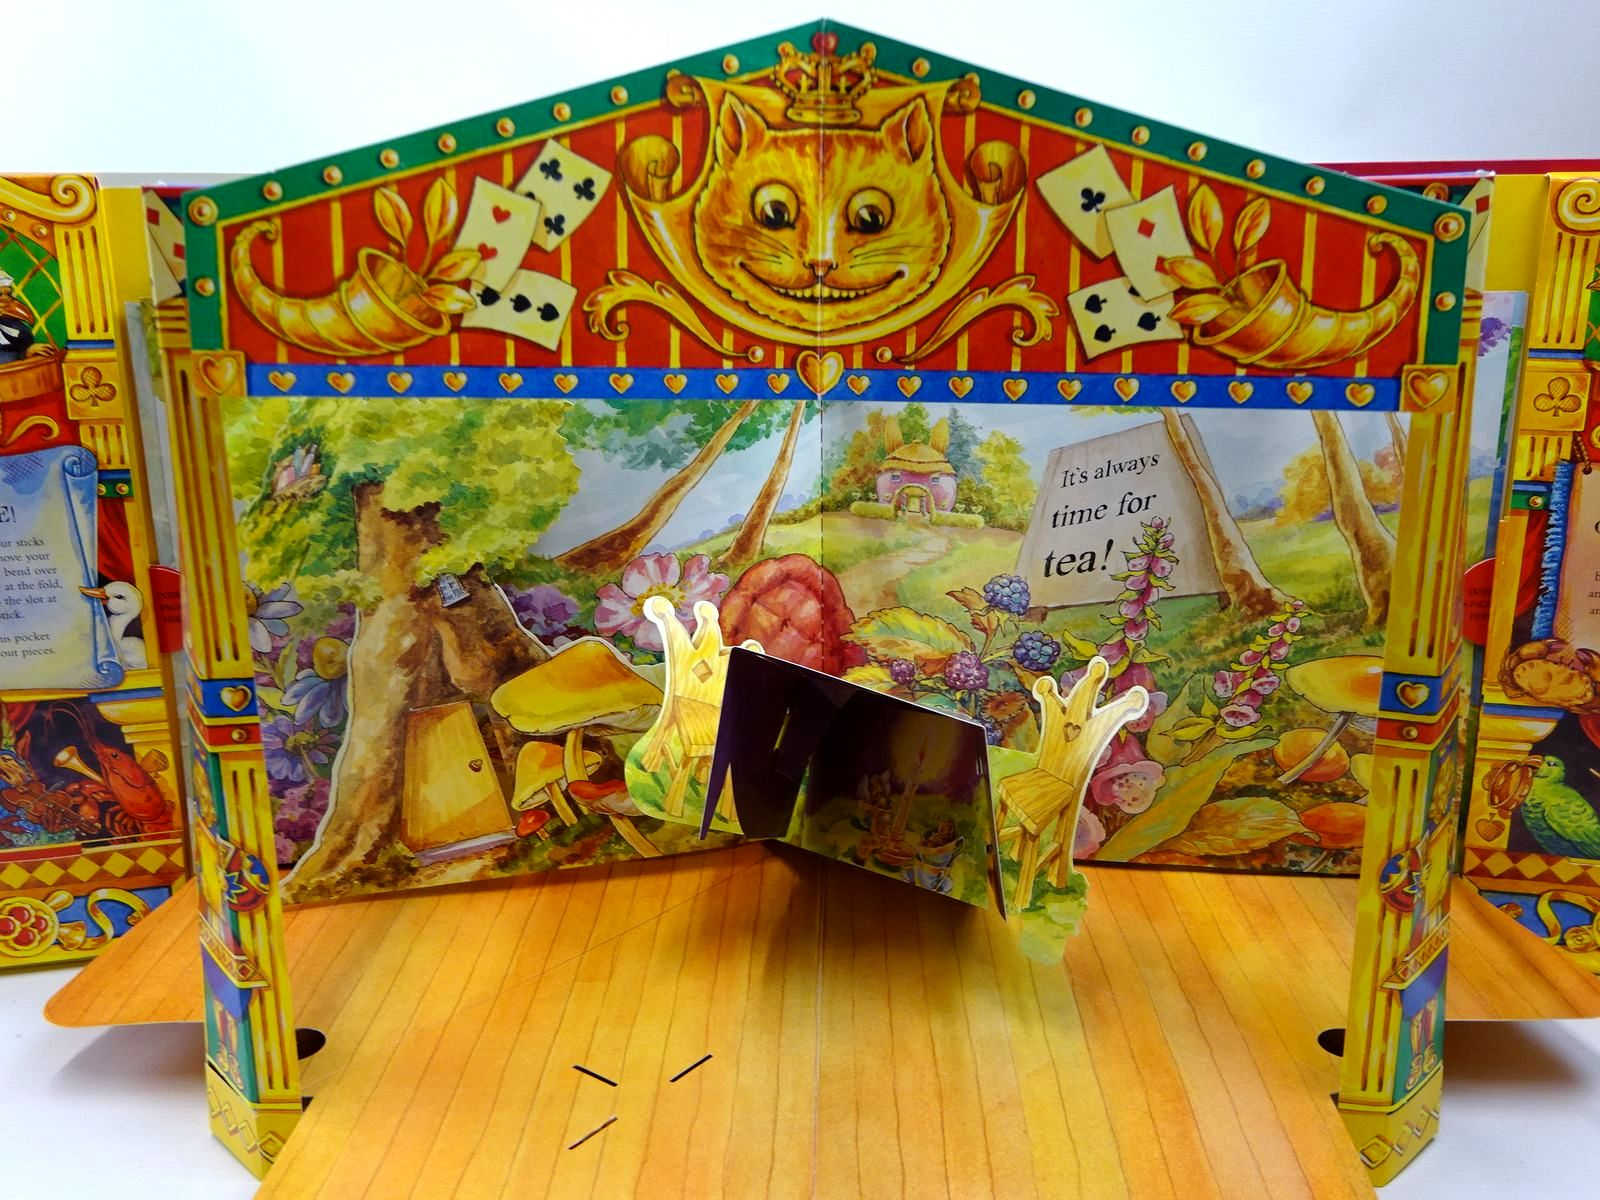 Photo of ALICE'S POP-UP THEATRE BOOK written by Carroll, Lewis<br />Denchfield, Nick illustrated by Vining, Alex published by Macmillan Children's Books (STOCK CODE: 2126638)  for sale by Stella & Rose's Books